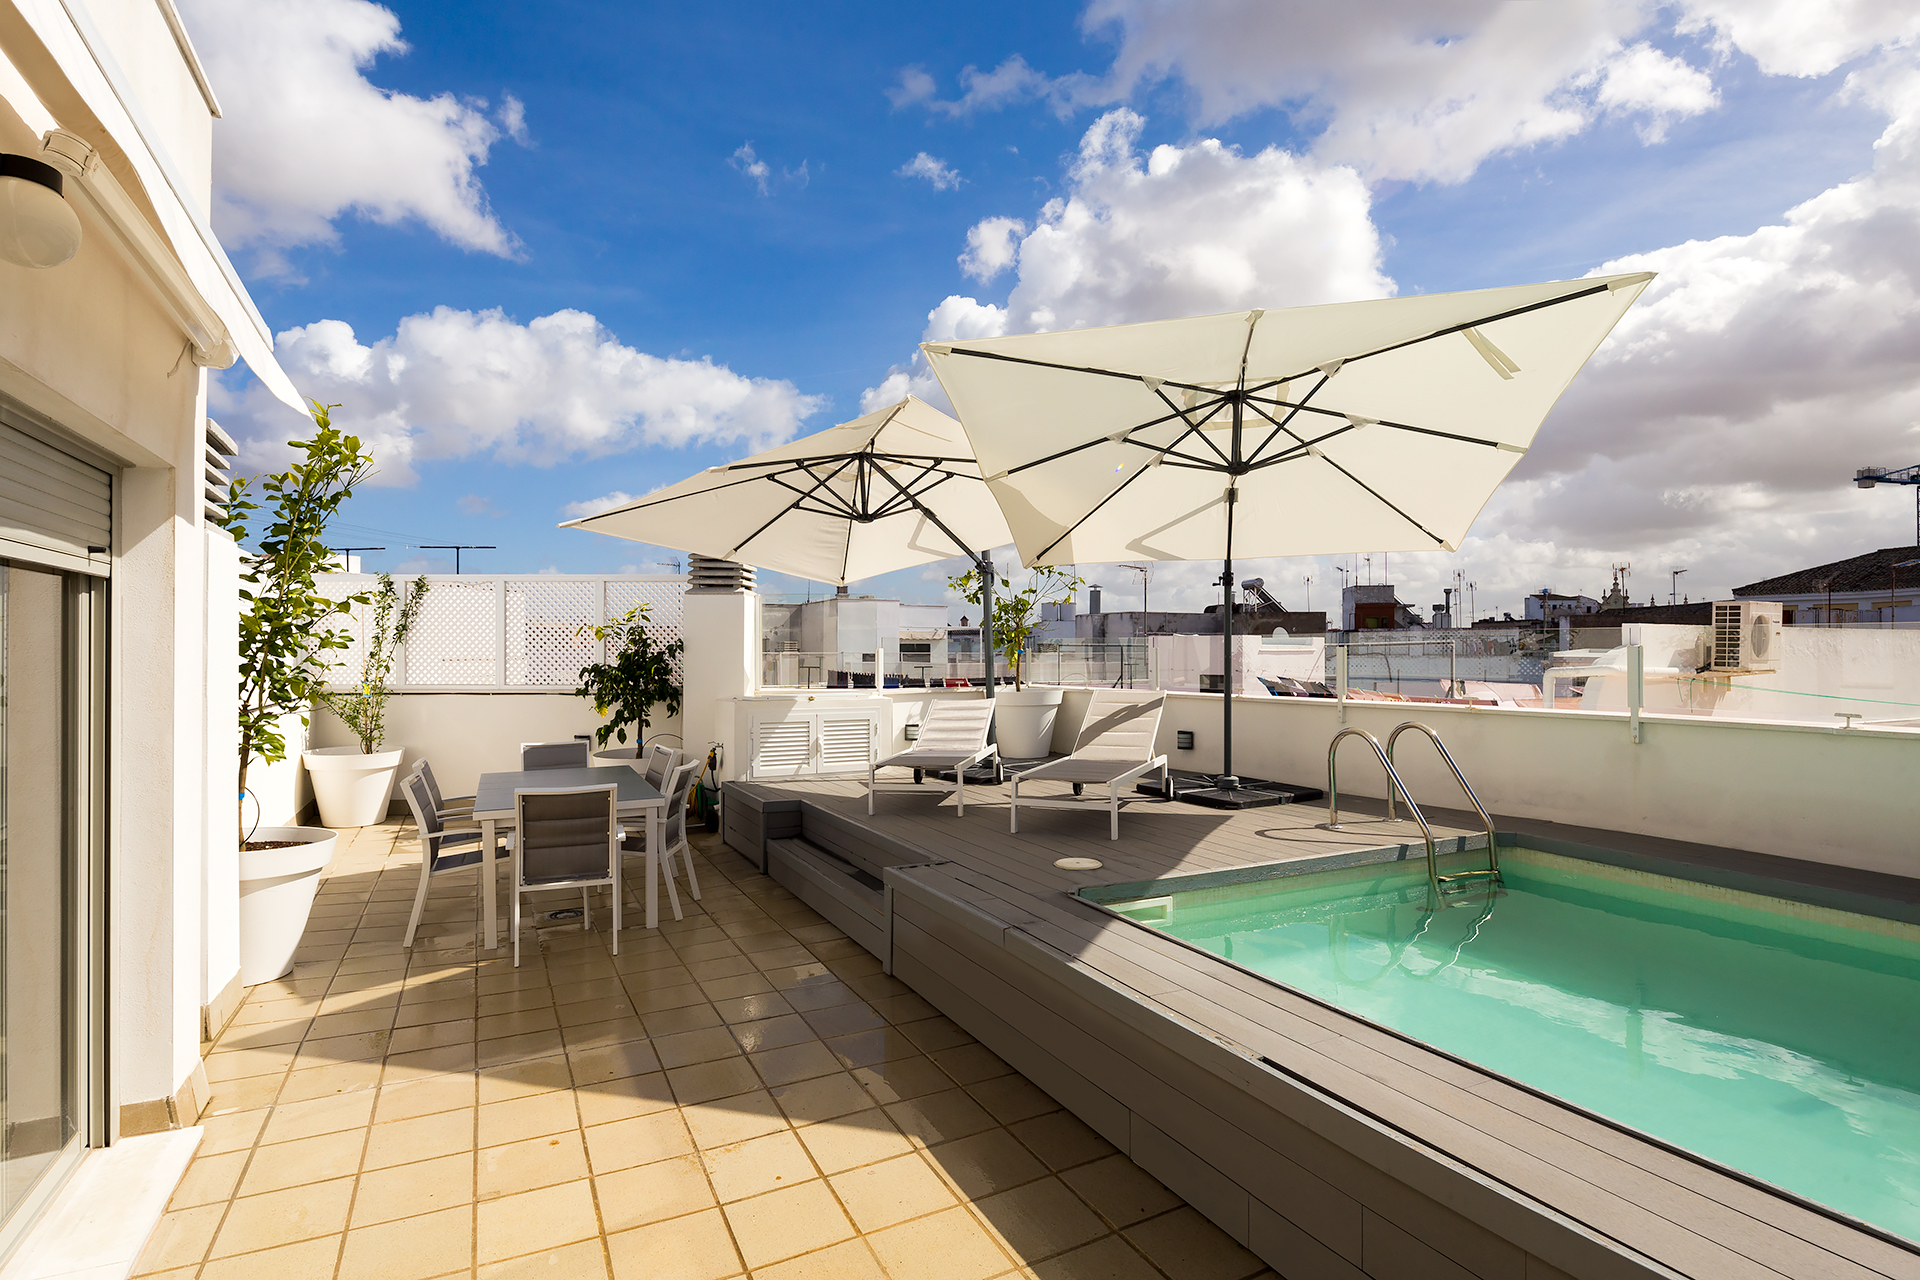 Cervantes. 2 bedrooms, terrace & private pool - Apartments for Rent in  Sevilla, Andalucía, Spain